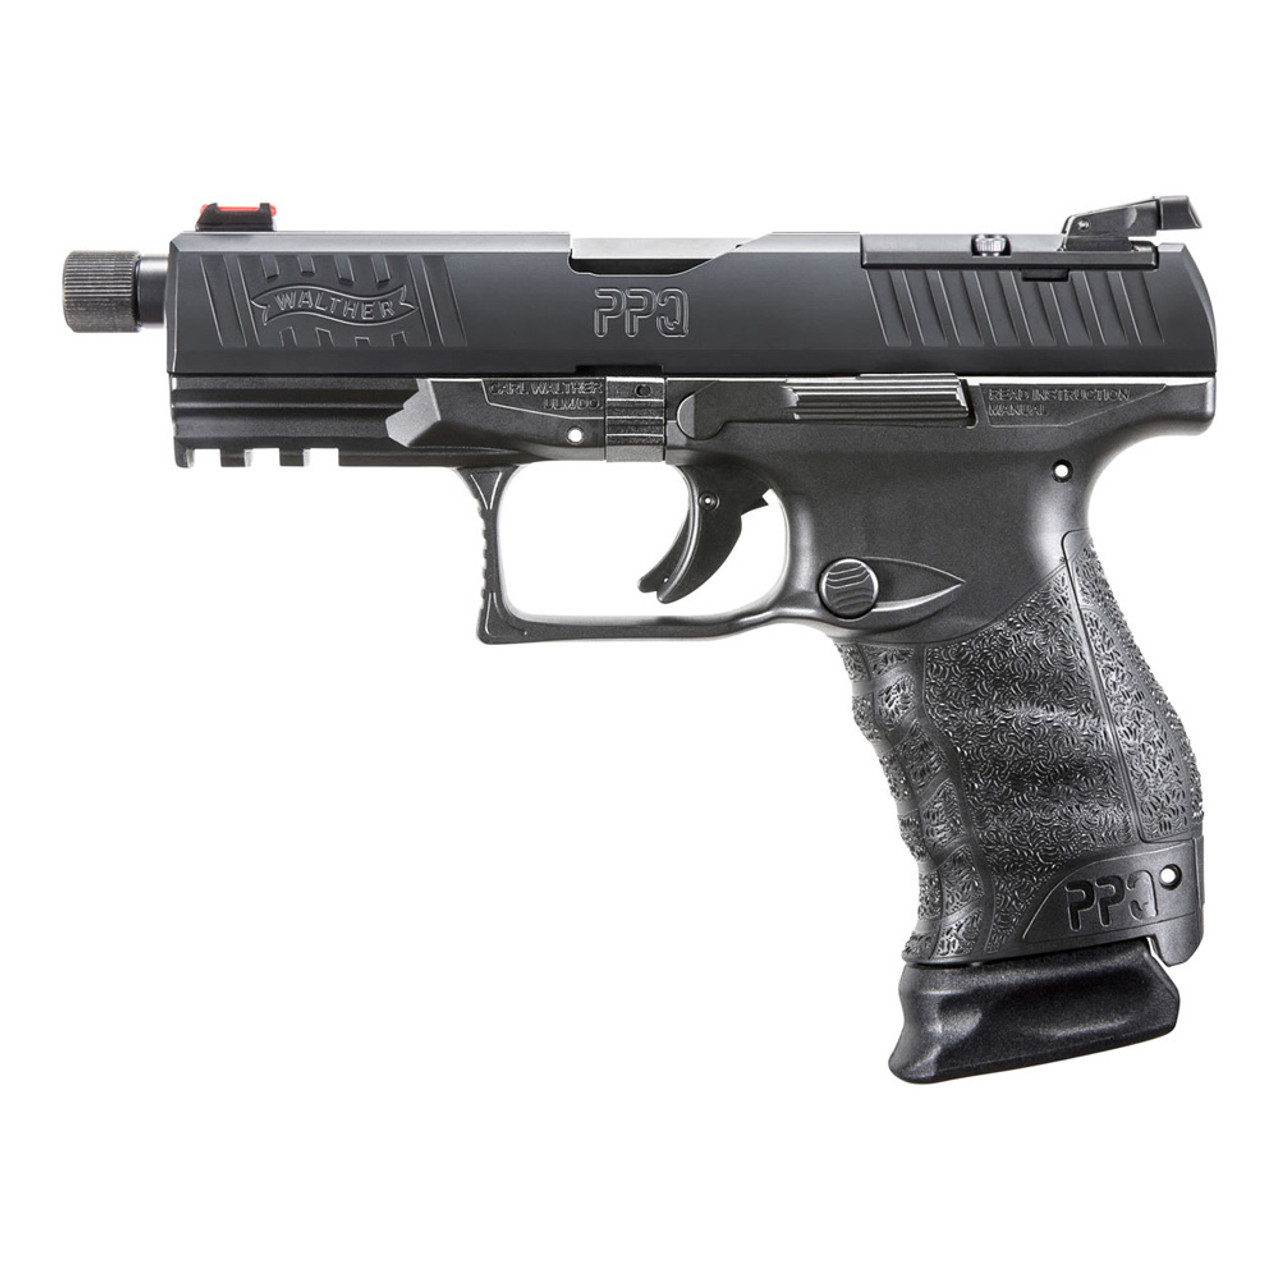 WALTHER PPQ Q4 Tac 9mm 4 6in with Threaded Barrel Black Pistol (2825929)